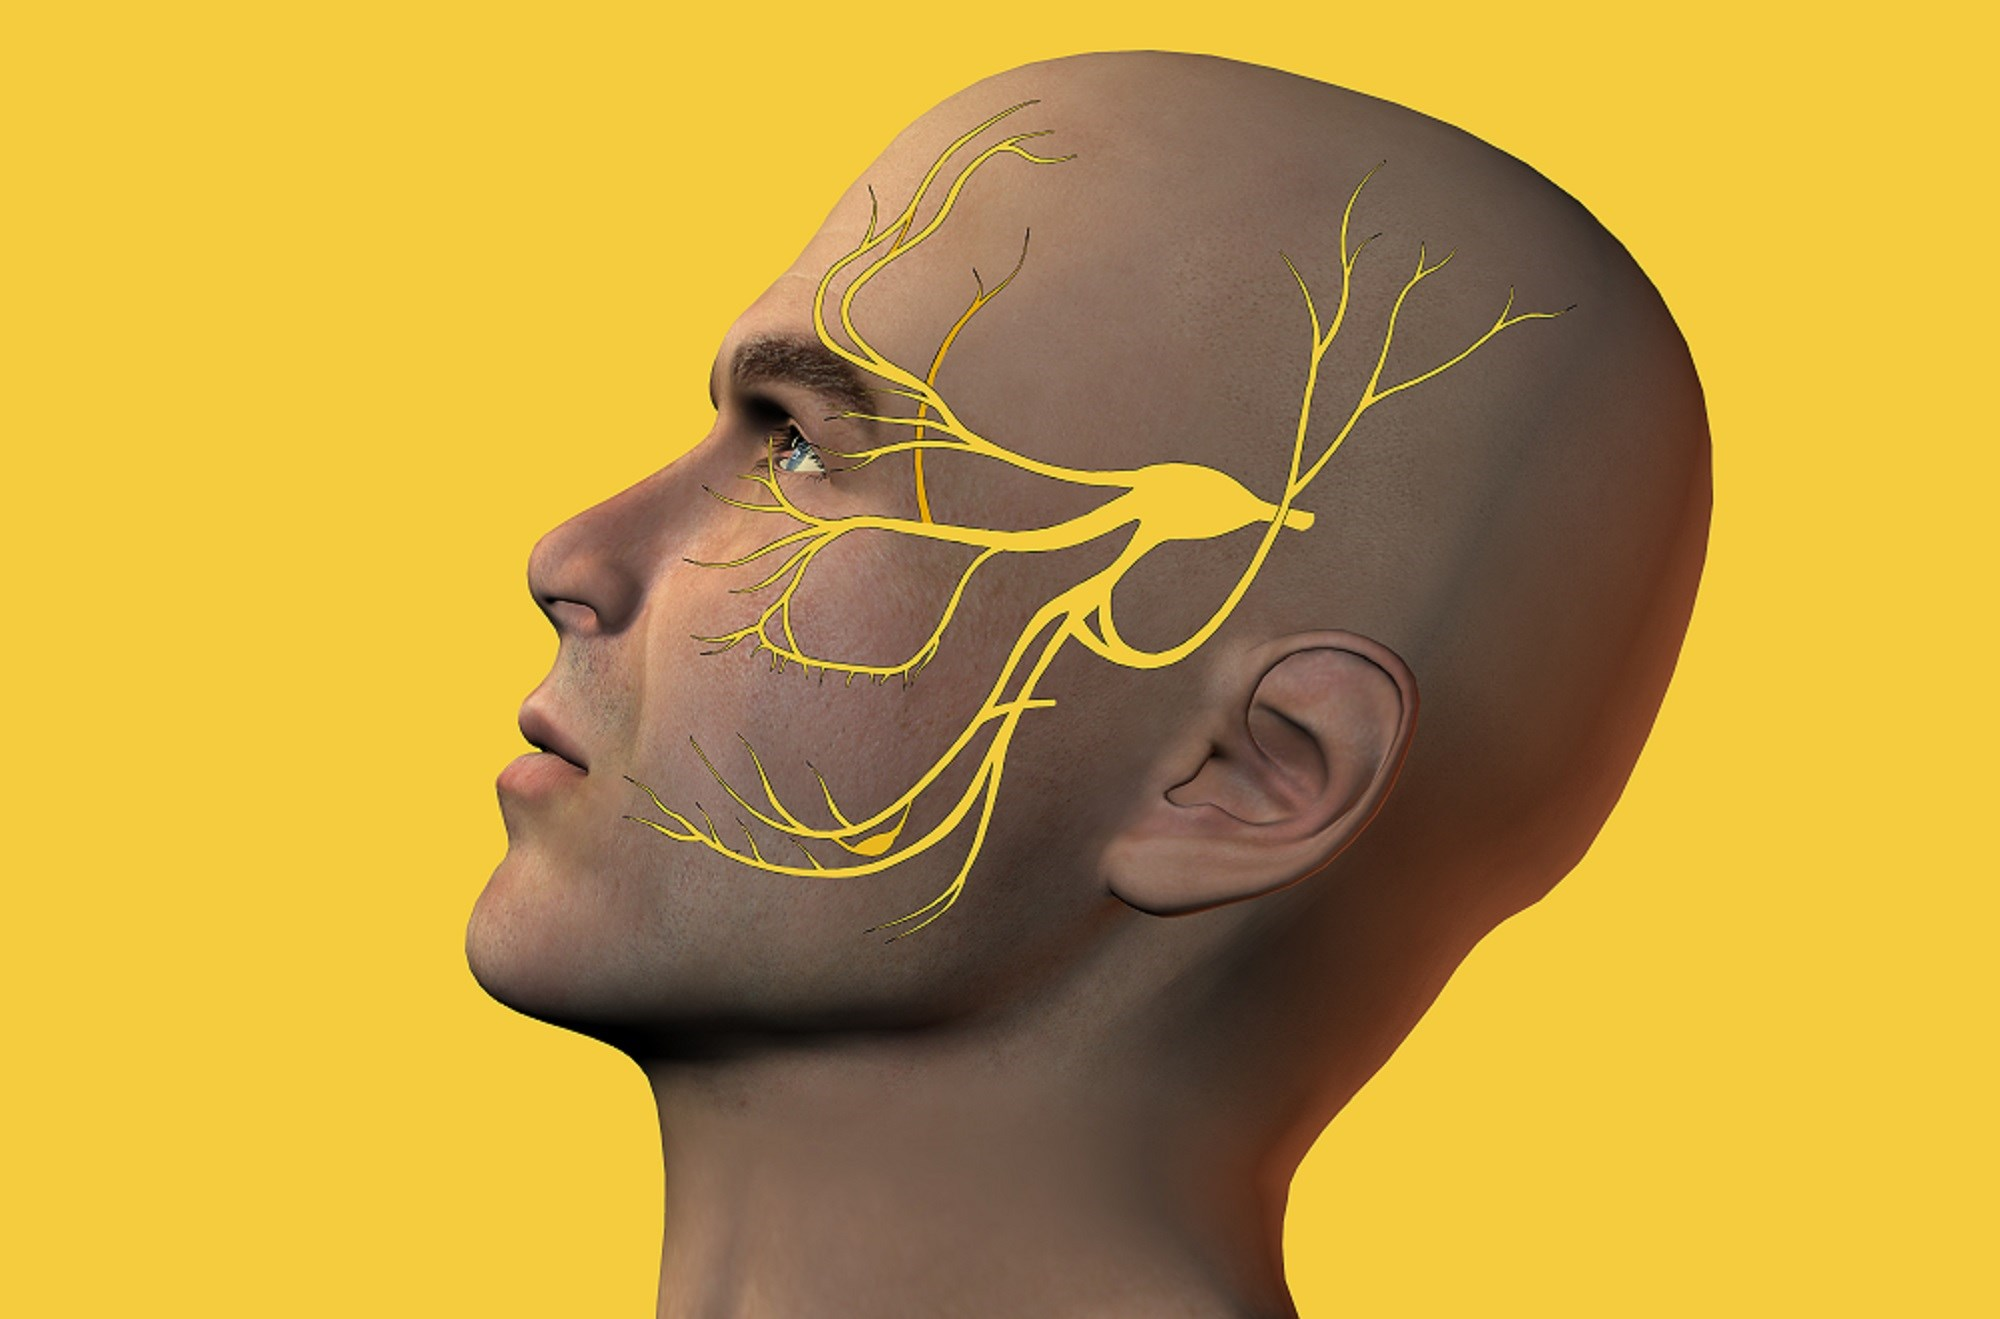 External Trigeminal Nerve Stimulation May Alleviate Migraine Pain